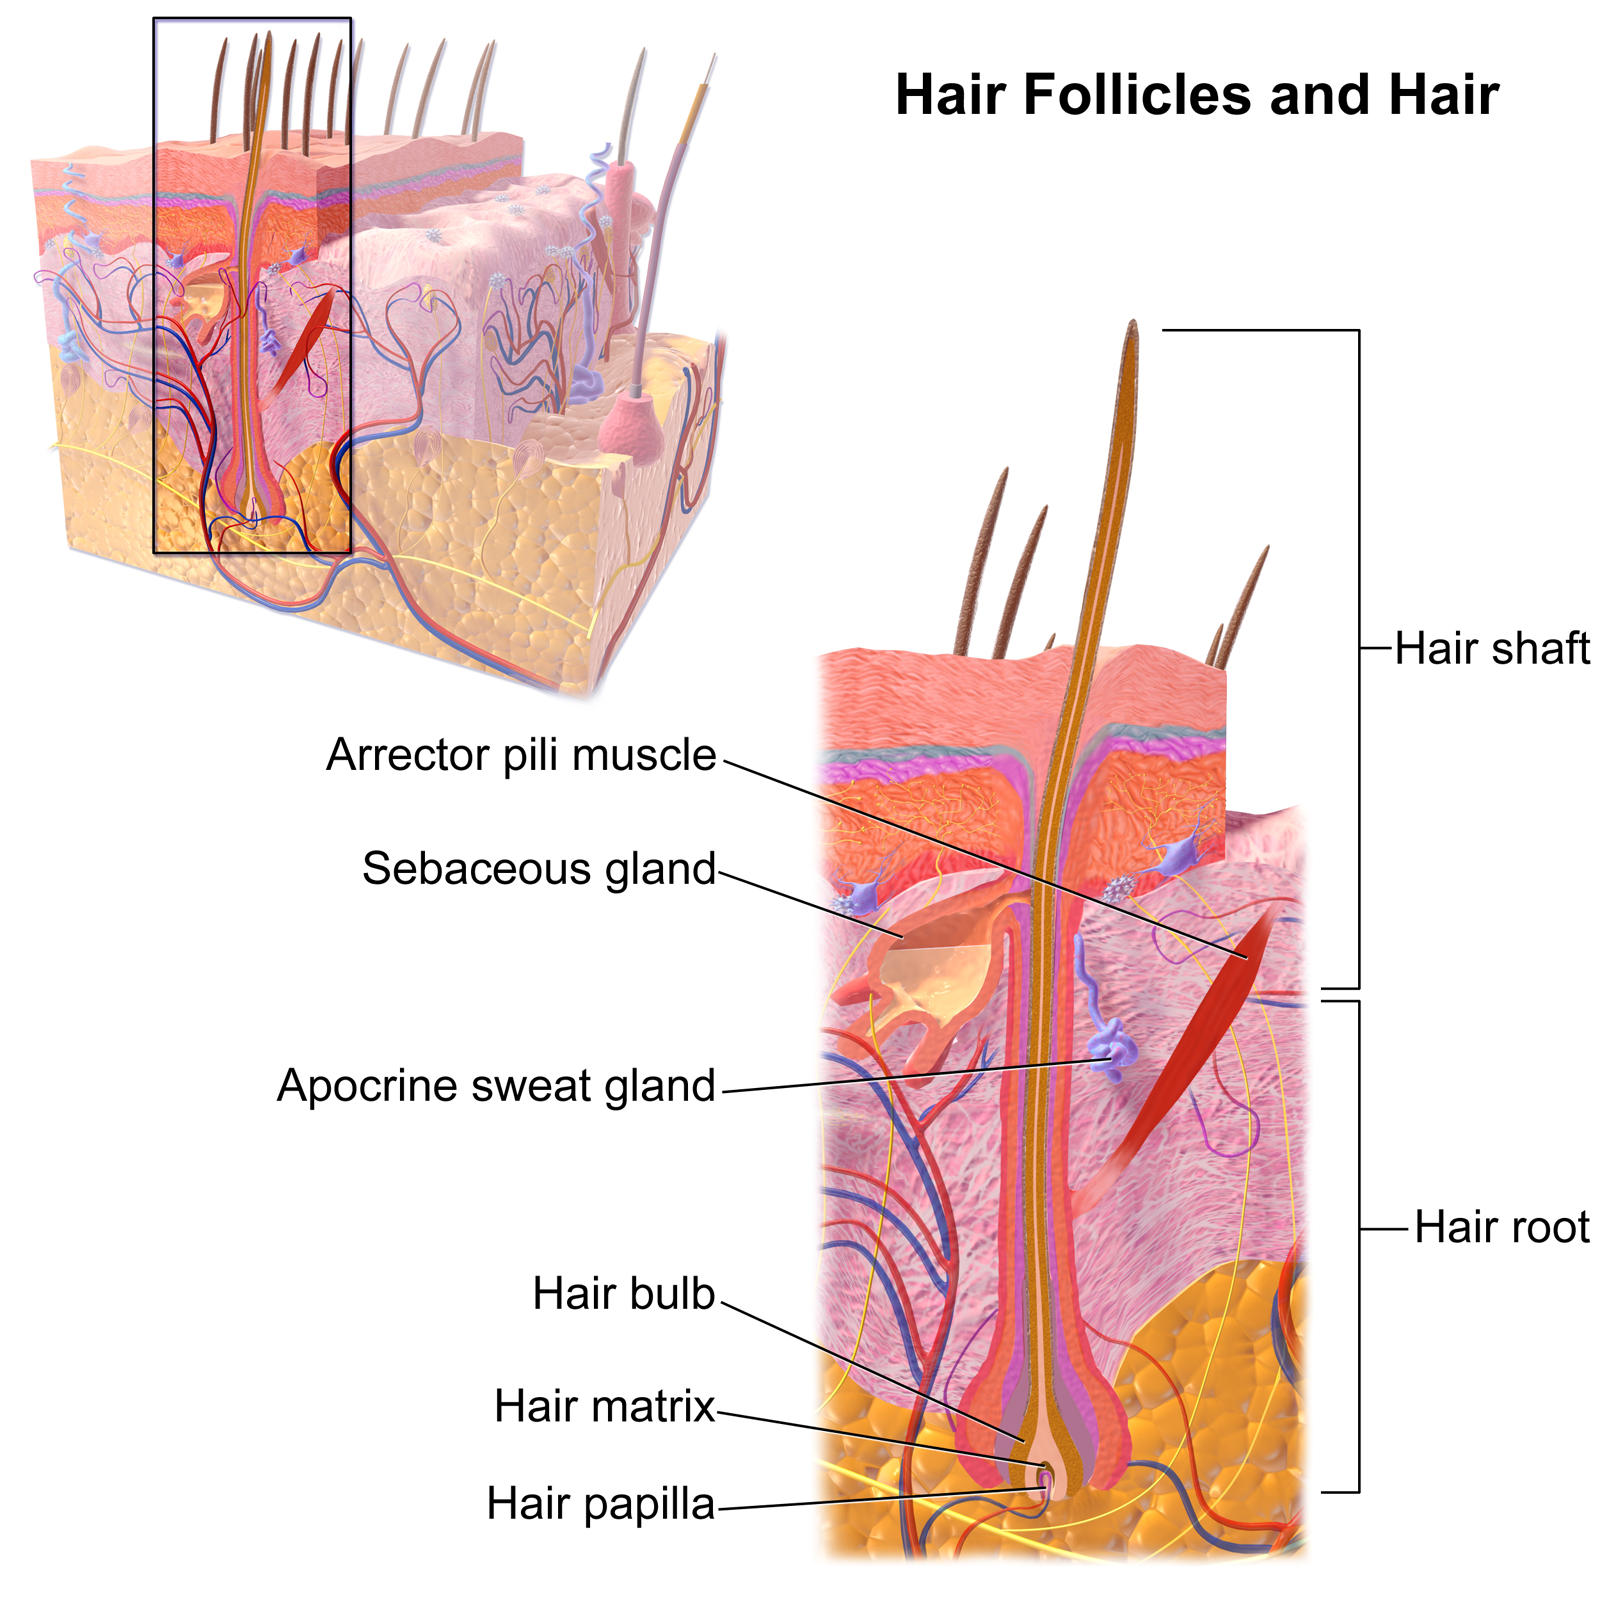 File:Blausen 0438 HairFollicleAnatomy 02.png - Wikimedia Commons